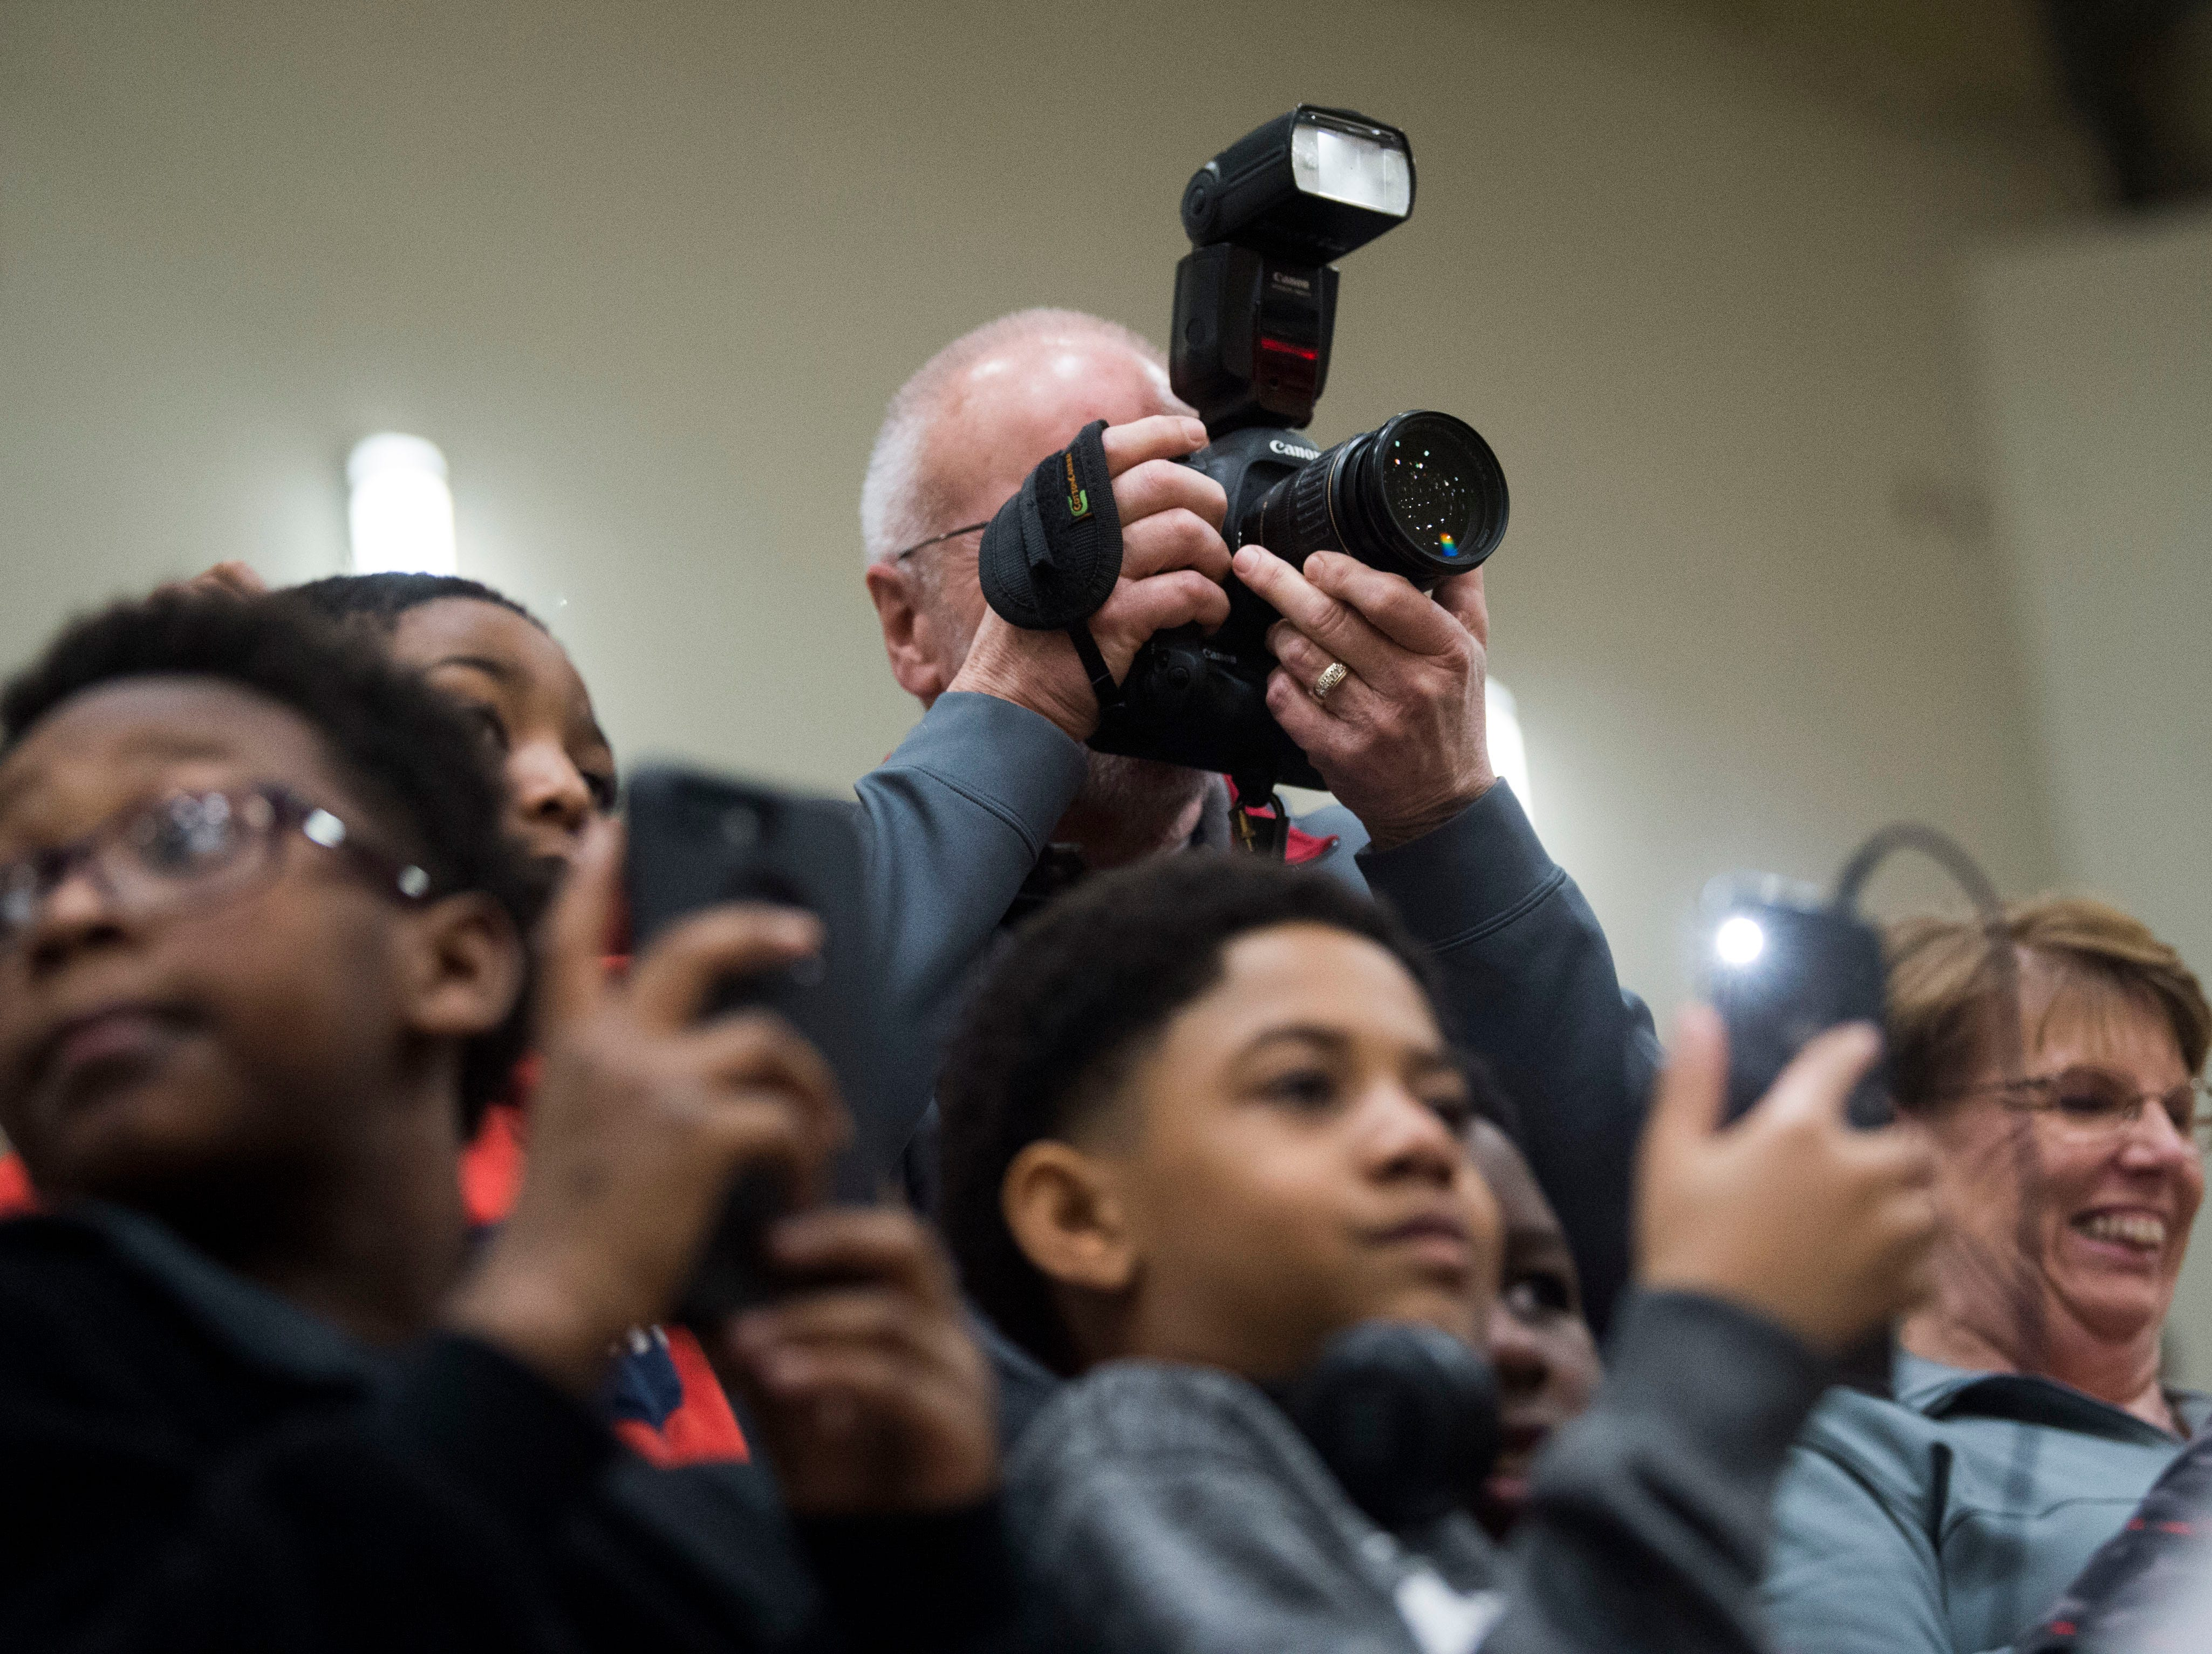 Attendees film former Oak Ridge High School athlete Tee Higgins, now a wide receiver at Clemson University, as he returns to the court for his jersey to be retired, during a high school basketball game between Oak Ridge and Campbell County at Oak Ridge Friday, Feb. 1, 2019.